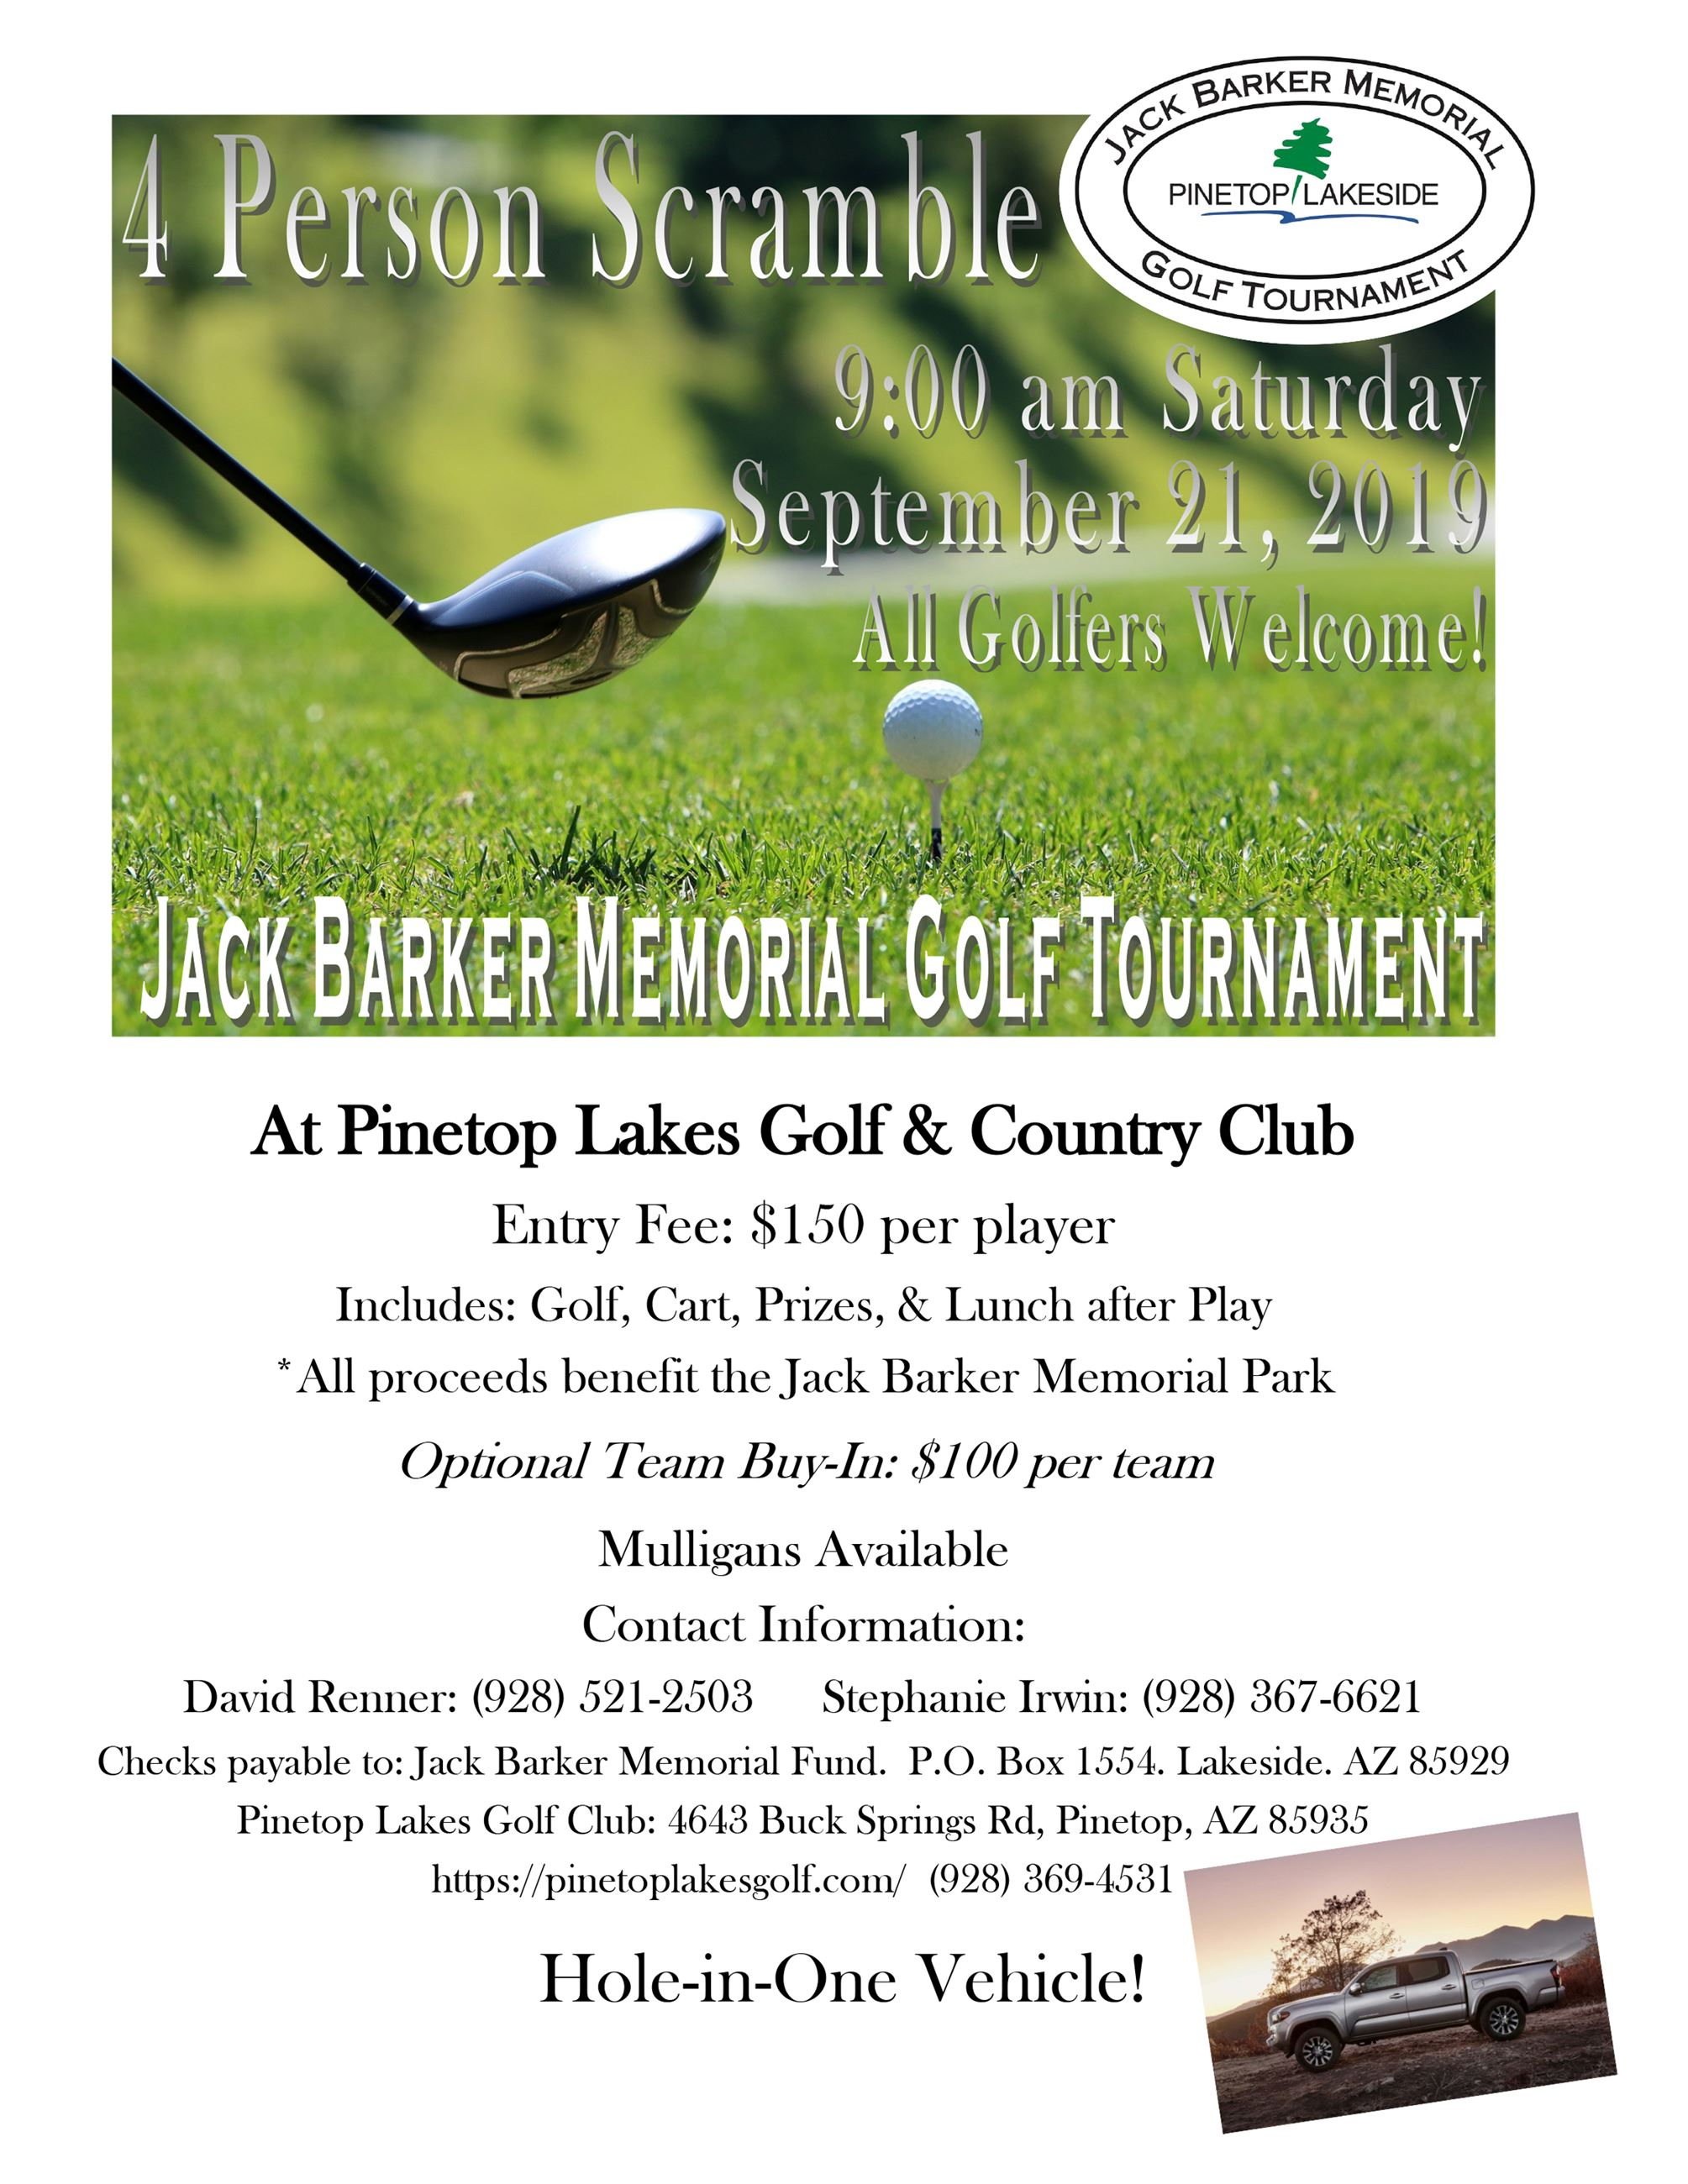 Jack Barker Memorial Golf Tournament 2019